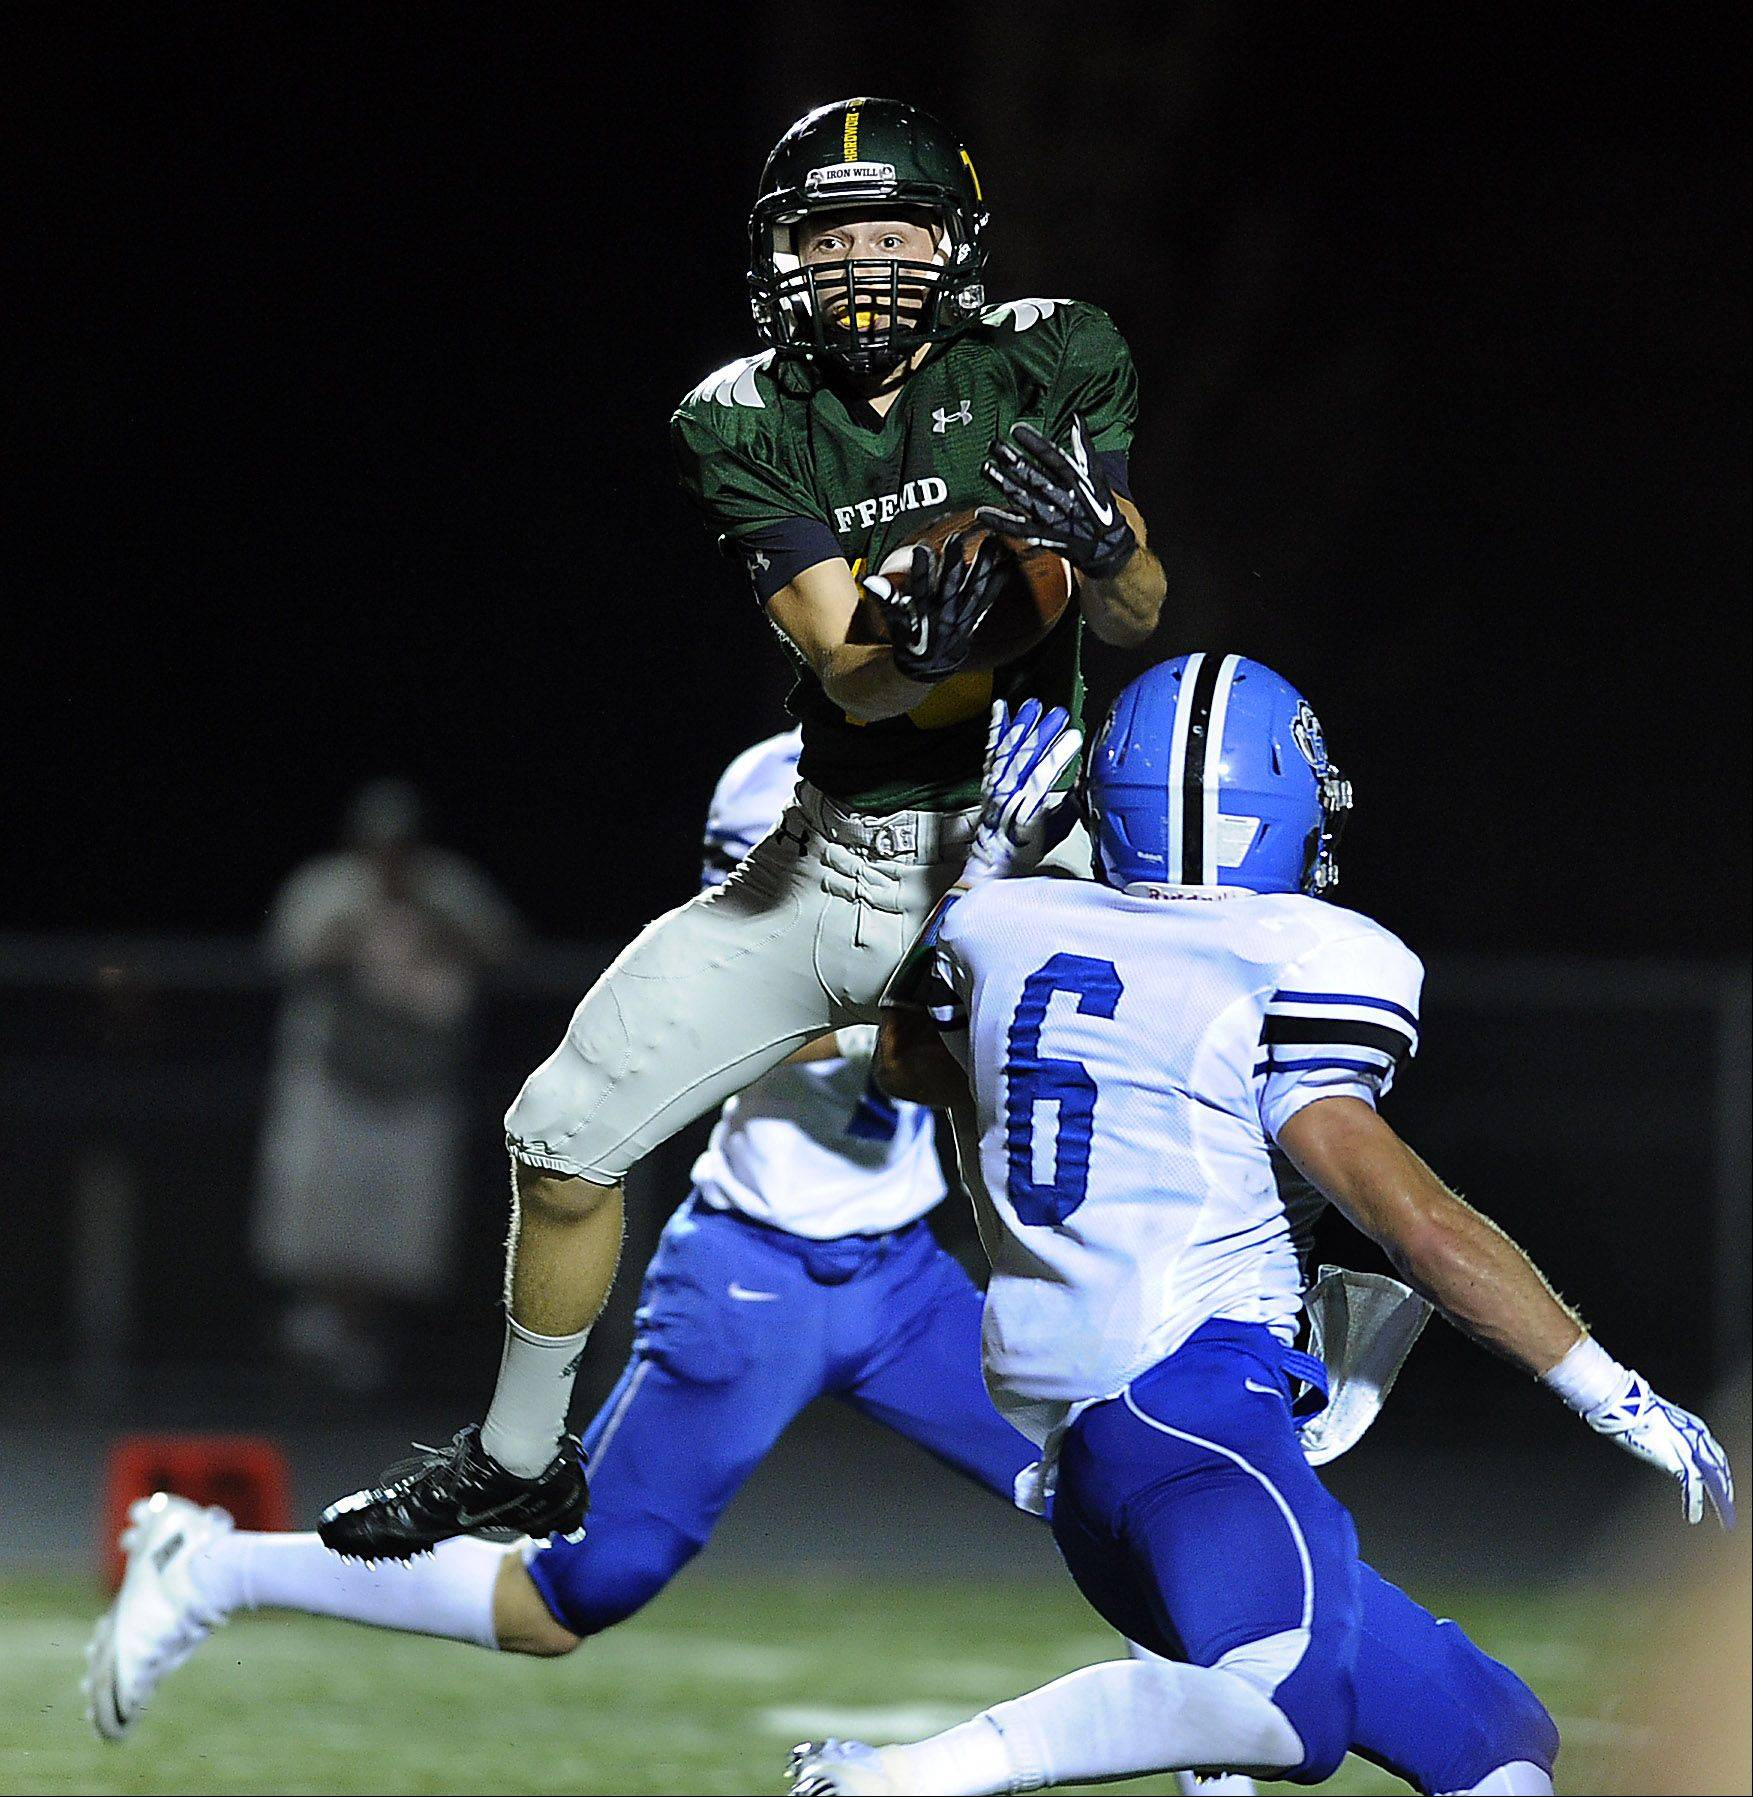 Fremd�s Anthony Halvorsen hauls in a pass play in the first quarter last weekend as Lake Zurich�s Sean Lynch attempts to stop him. The Vikings were held to 66 yards rushing and 62 passing as LZ won 24-0.